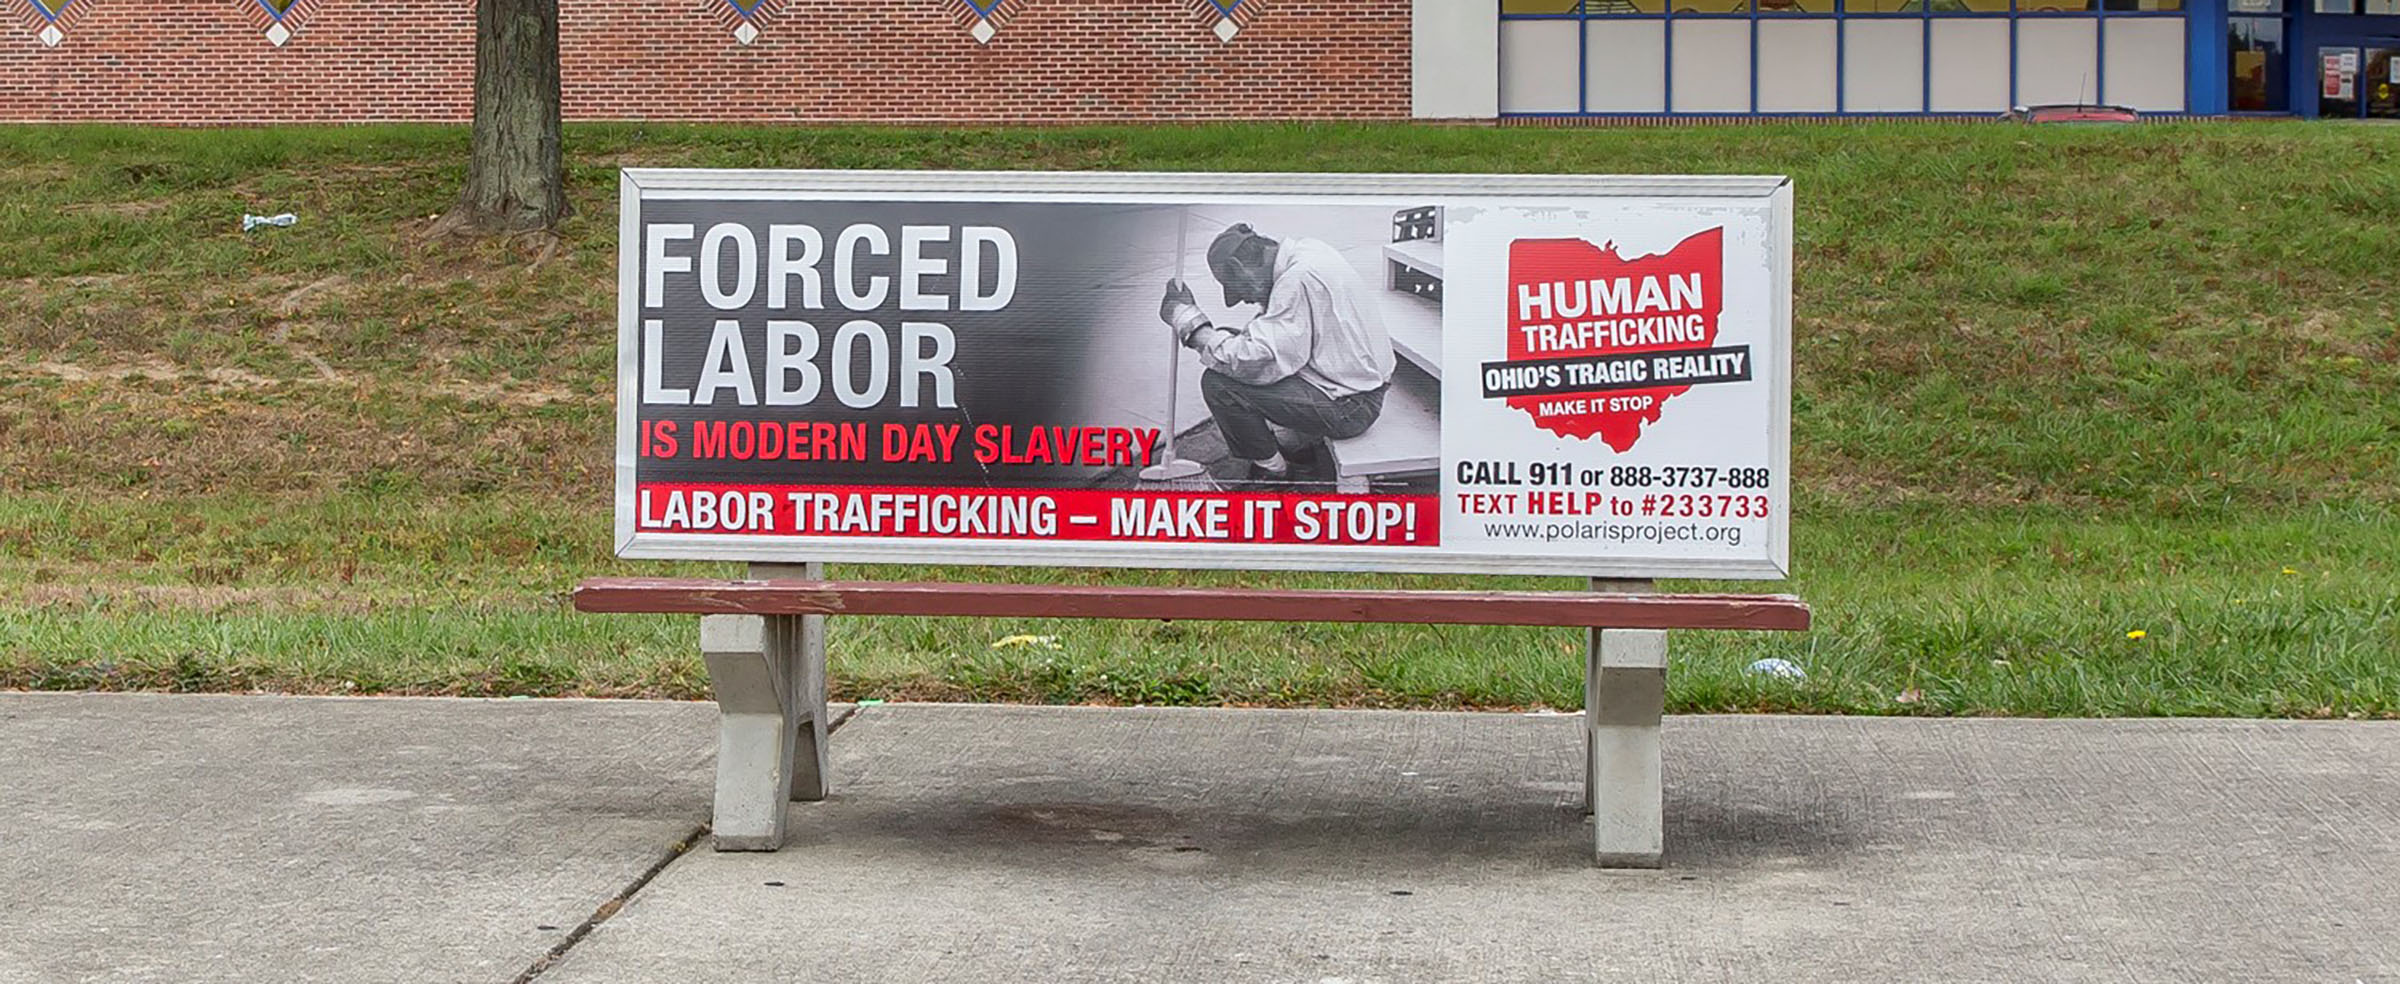 Ohio's Human Trafficking Awareness Campaign Materials Featured Through A  Bench Campaign In Central Ohio Human Trafficking